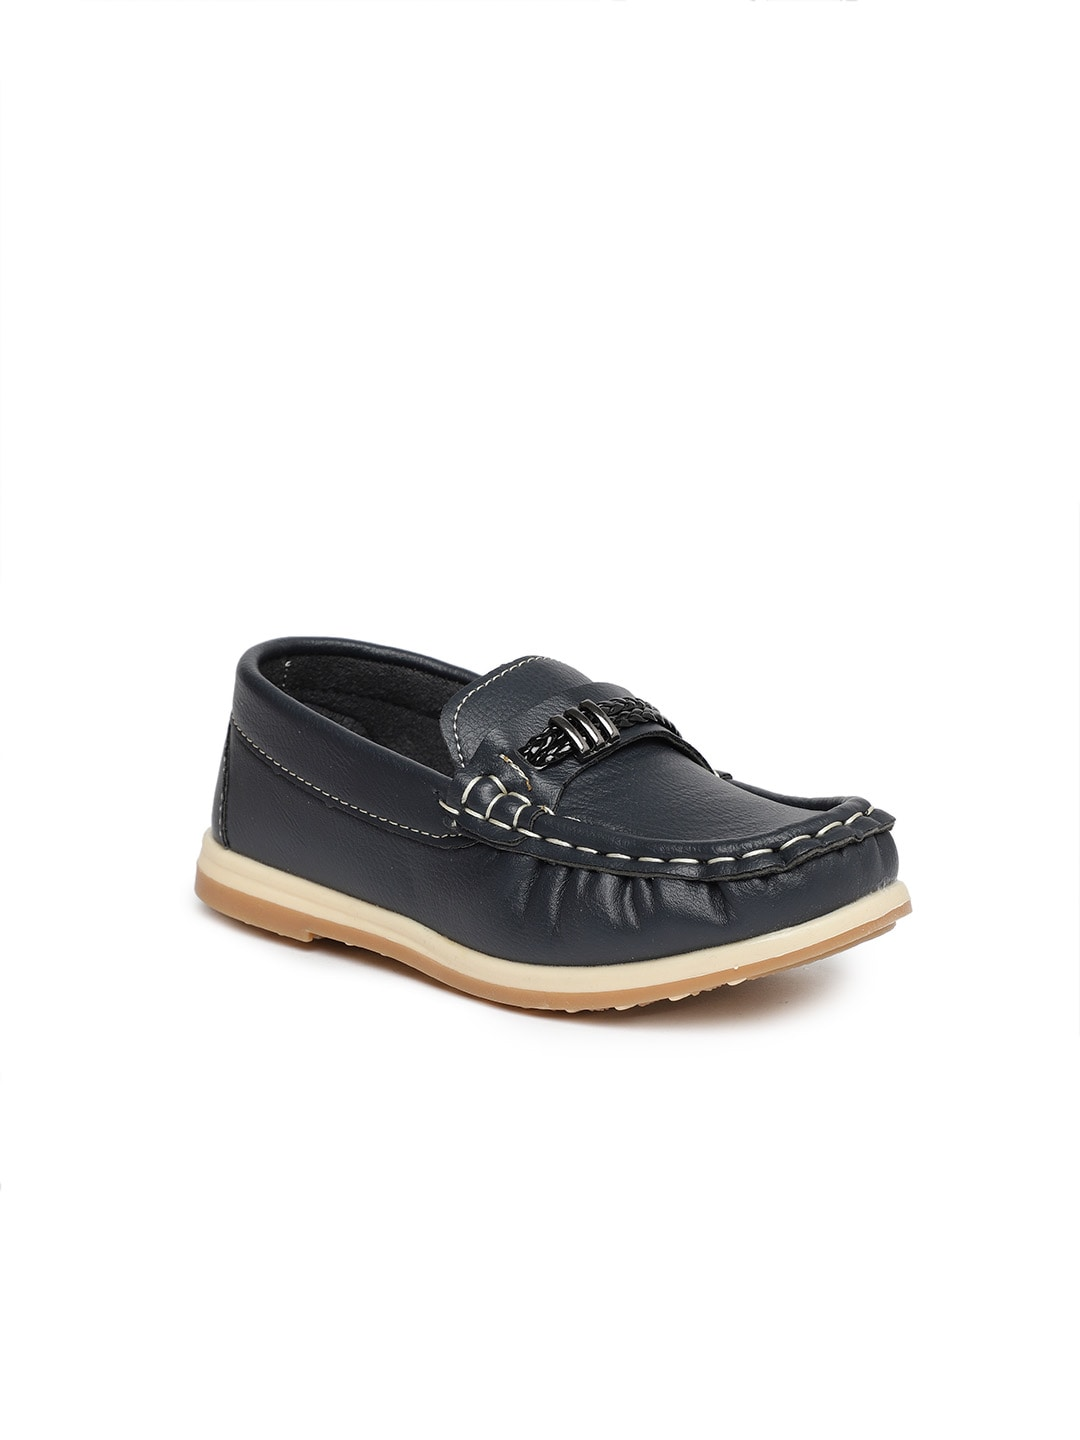 8b25ca5a74d Che Loafers Casual Shoes - Buy Che Loafers Casual Shoes online in India